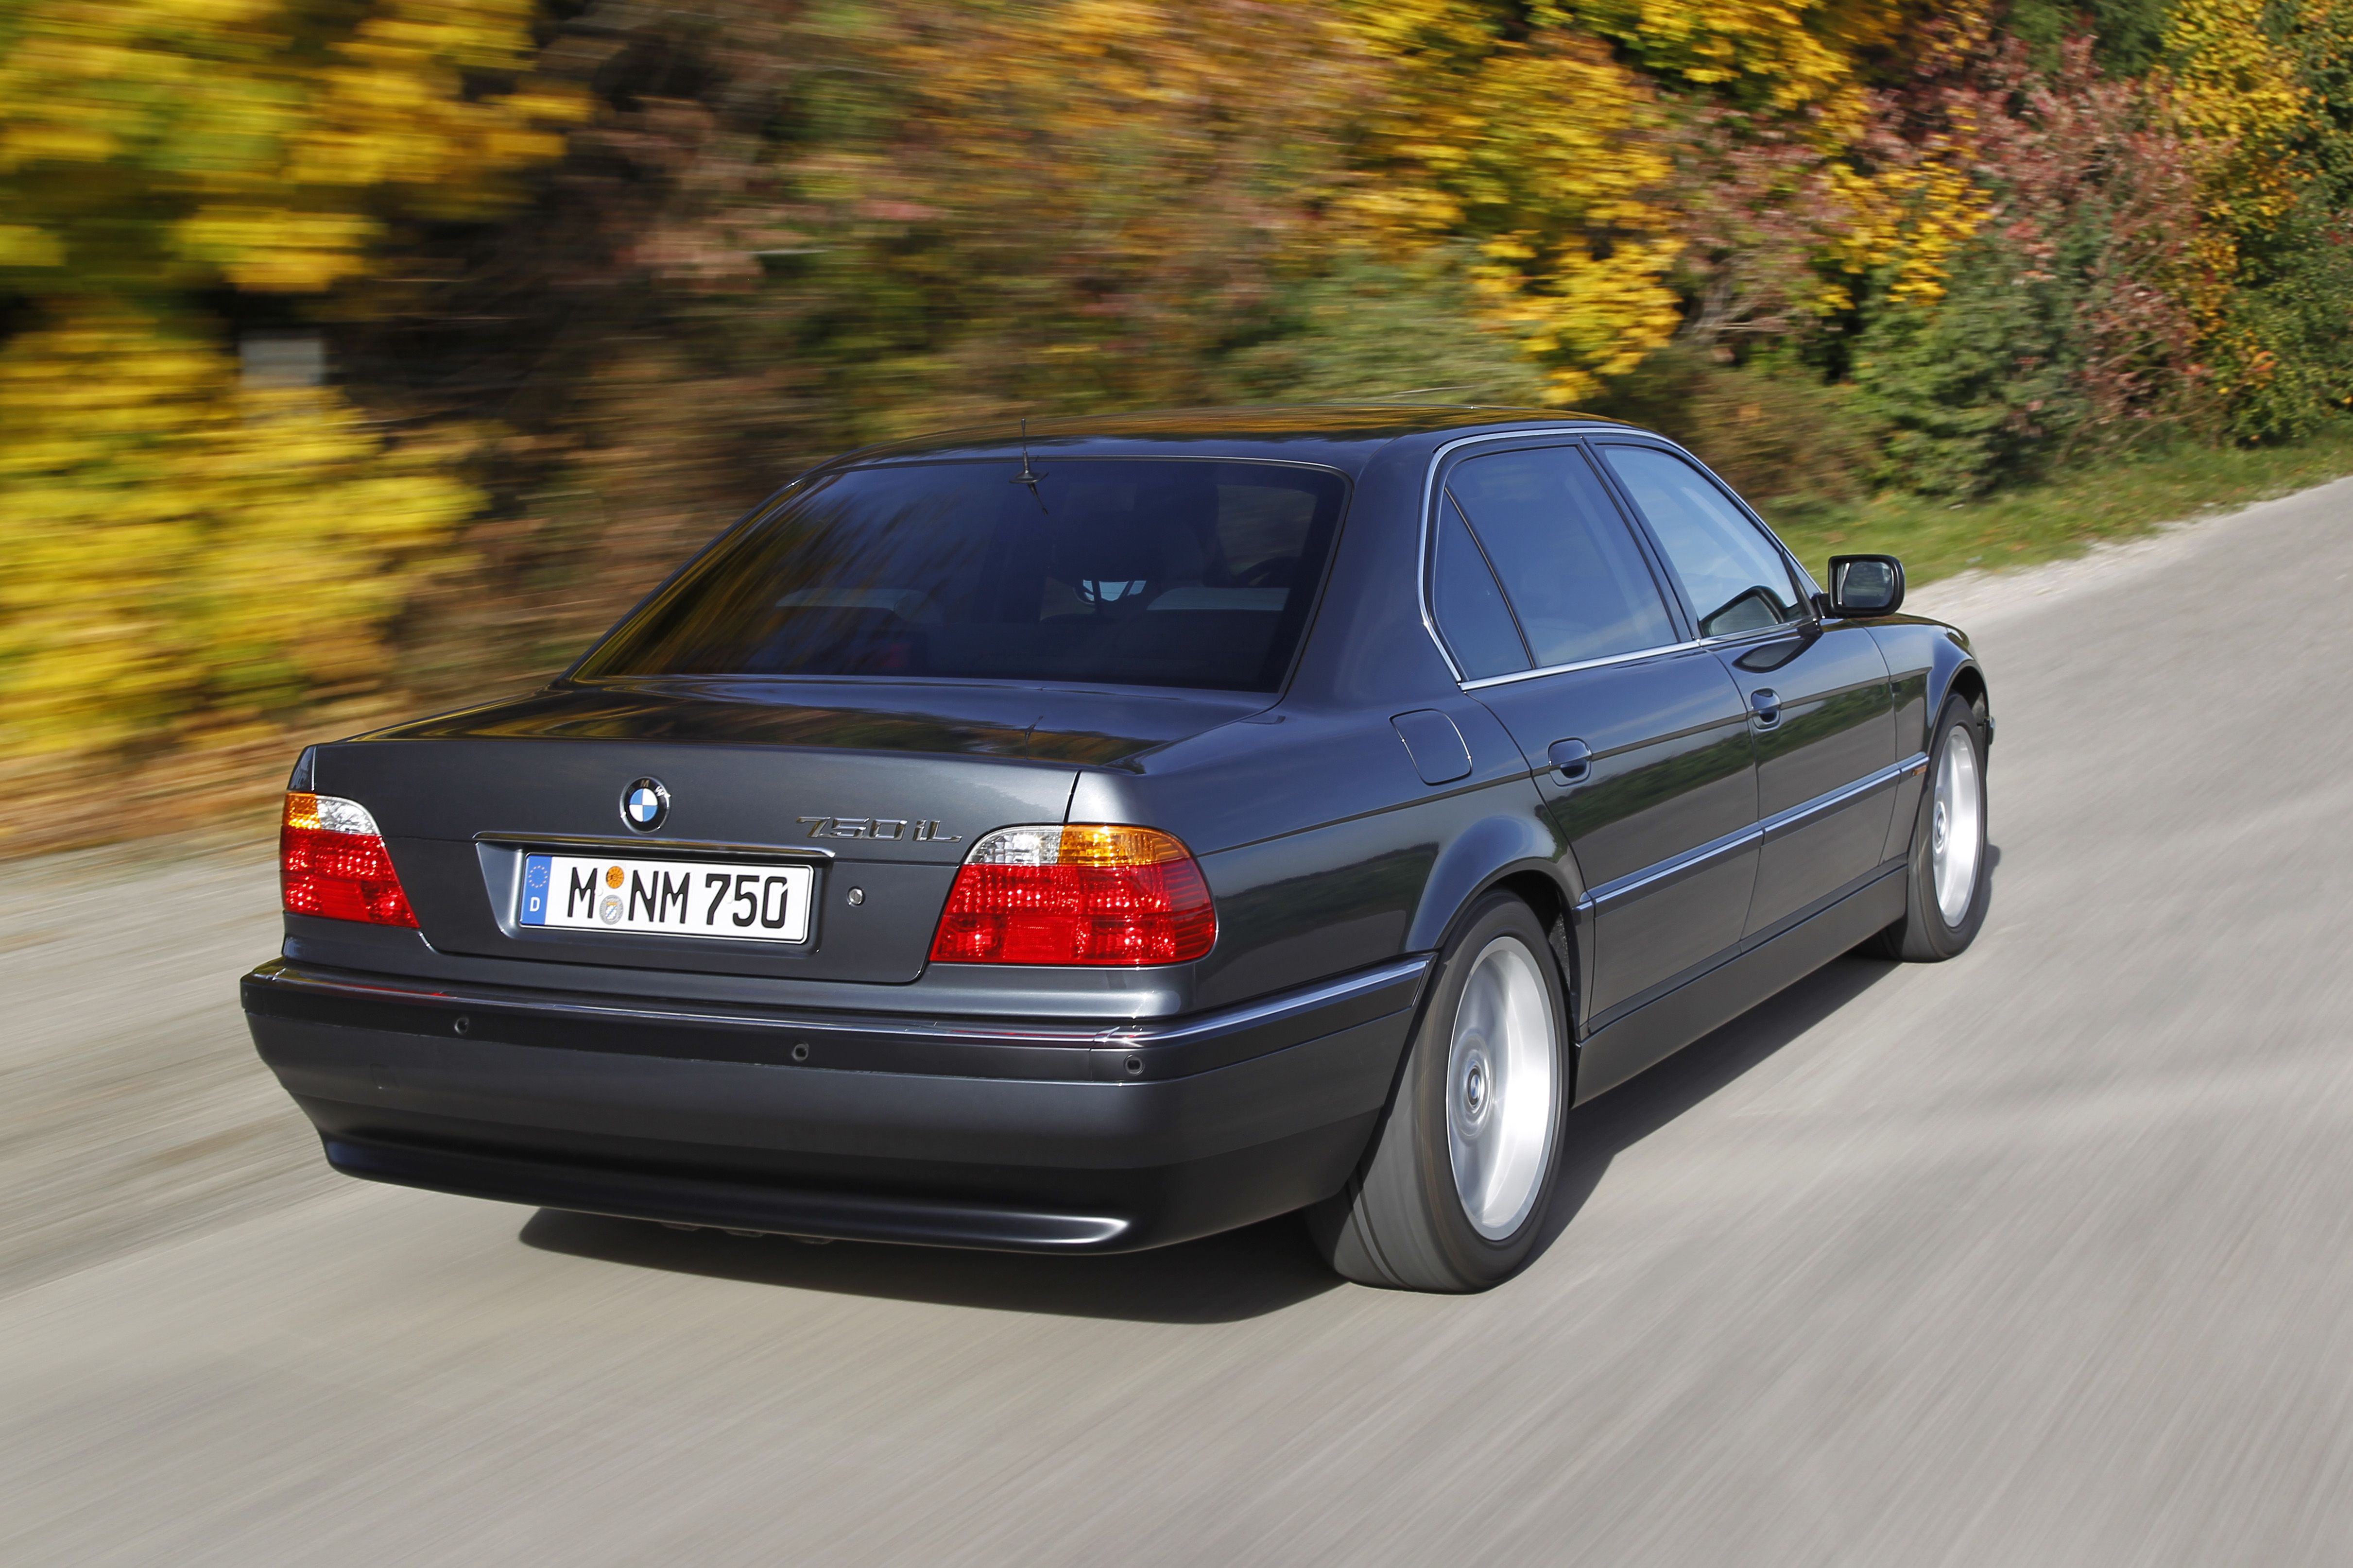 BMW 750iL E38  25 years of BMW 12cylinder engines  Pinterest